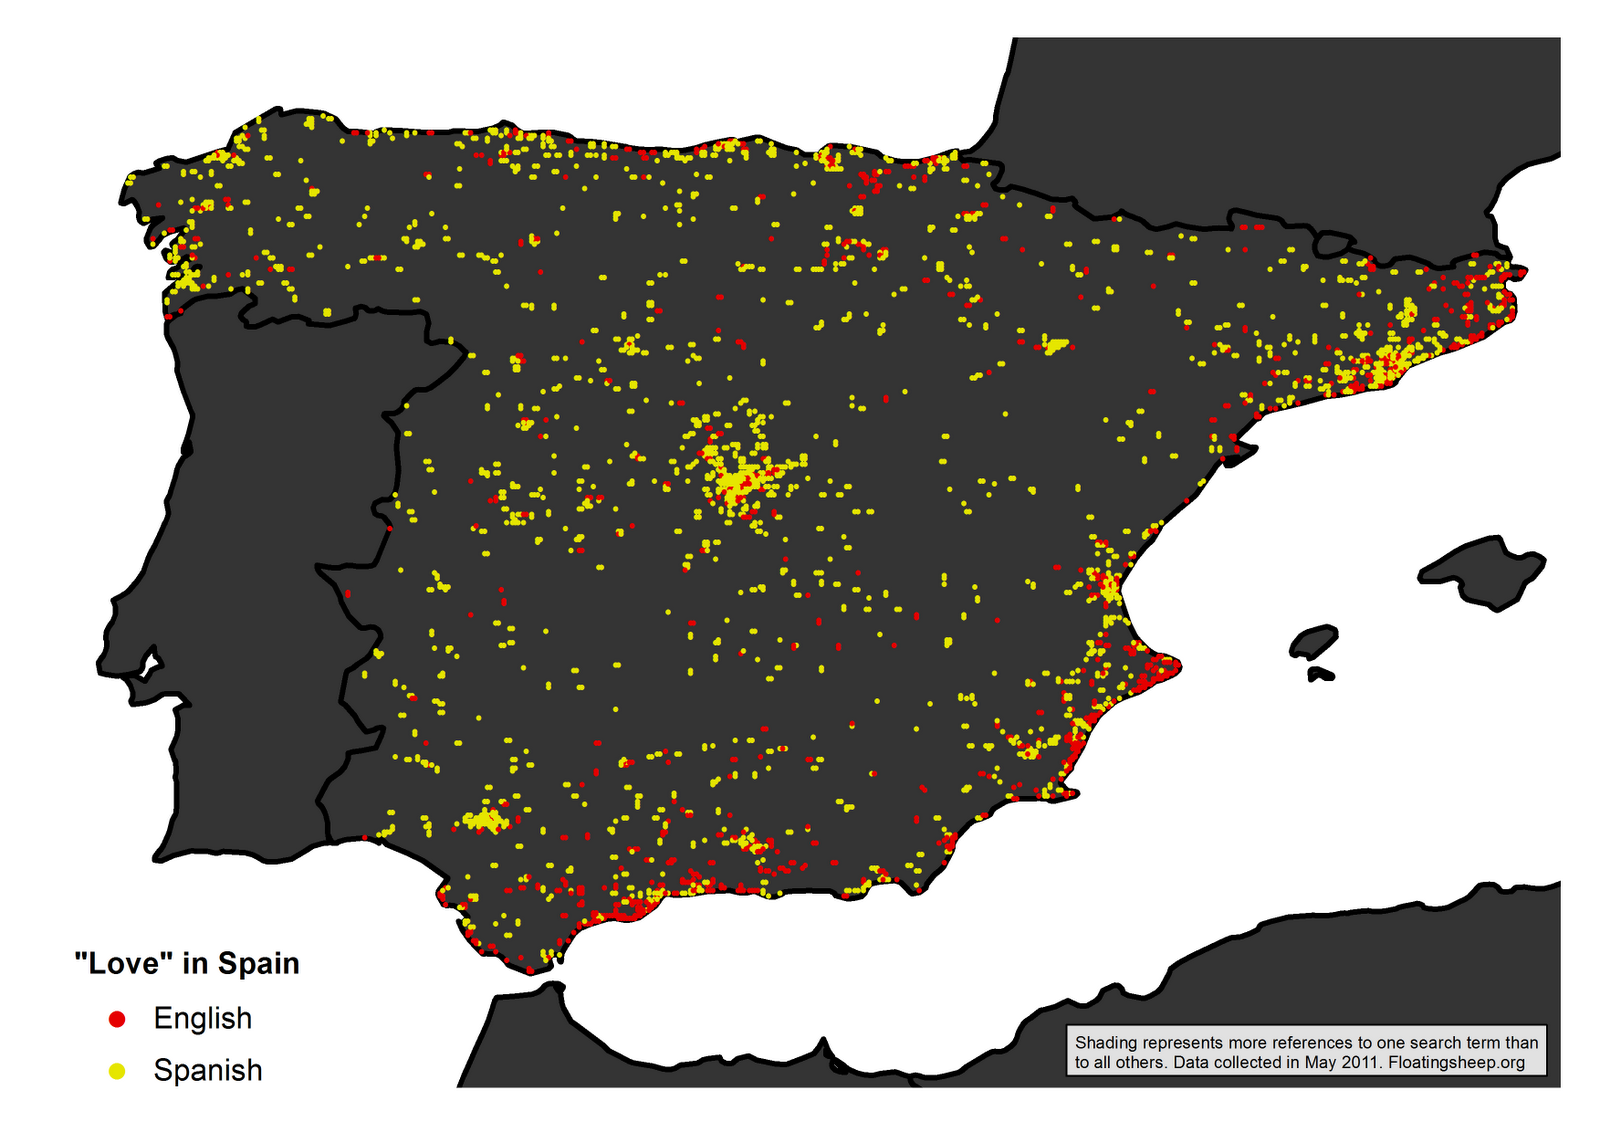 The Map Reveals That While The Spanish Term Is Much More Predominant Overall There Are C Ers Of Locations Along The Mediterranean Coast At Which There